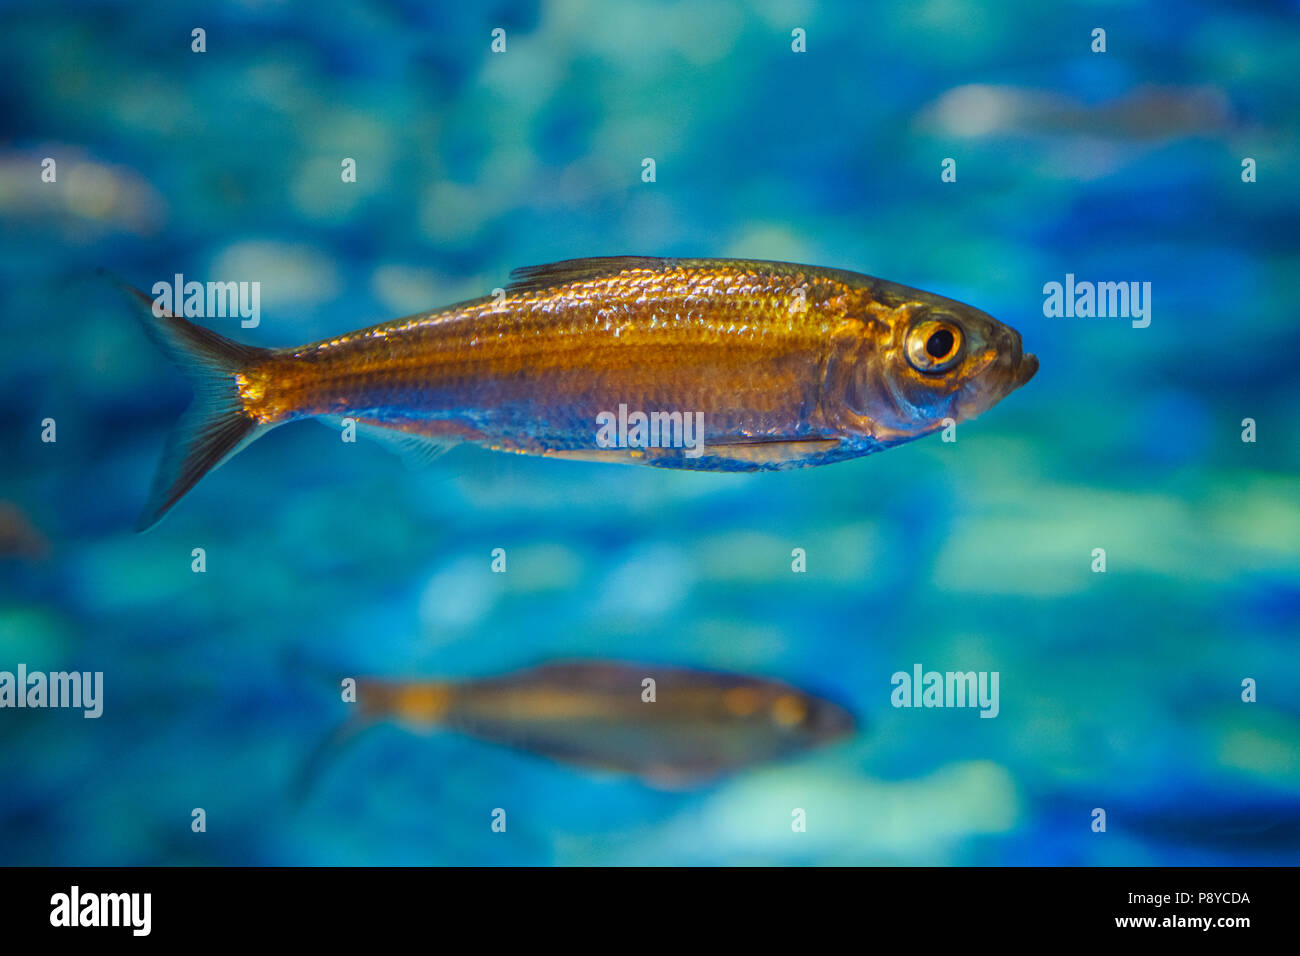 One small sea ocean yellow tropical fish in blue water, colorful underwater world, copyspace for text, background wallpaper - Stock Image